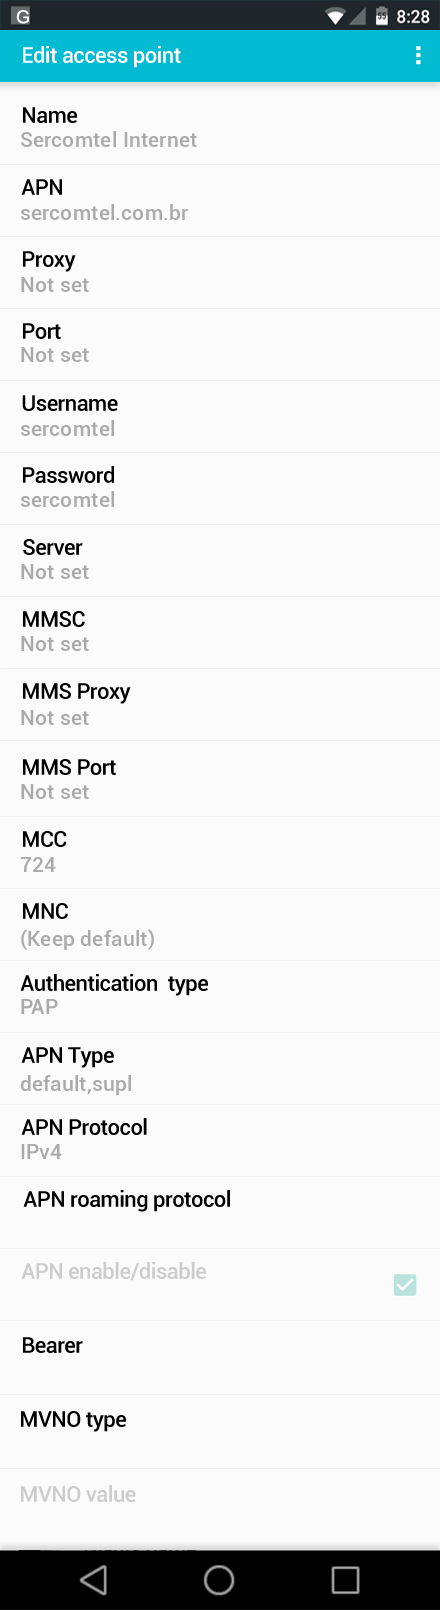 Sercomtel Internet APN settings for Android screenshot